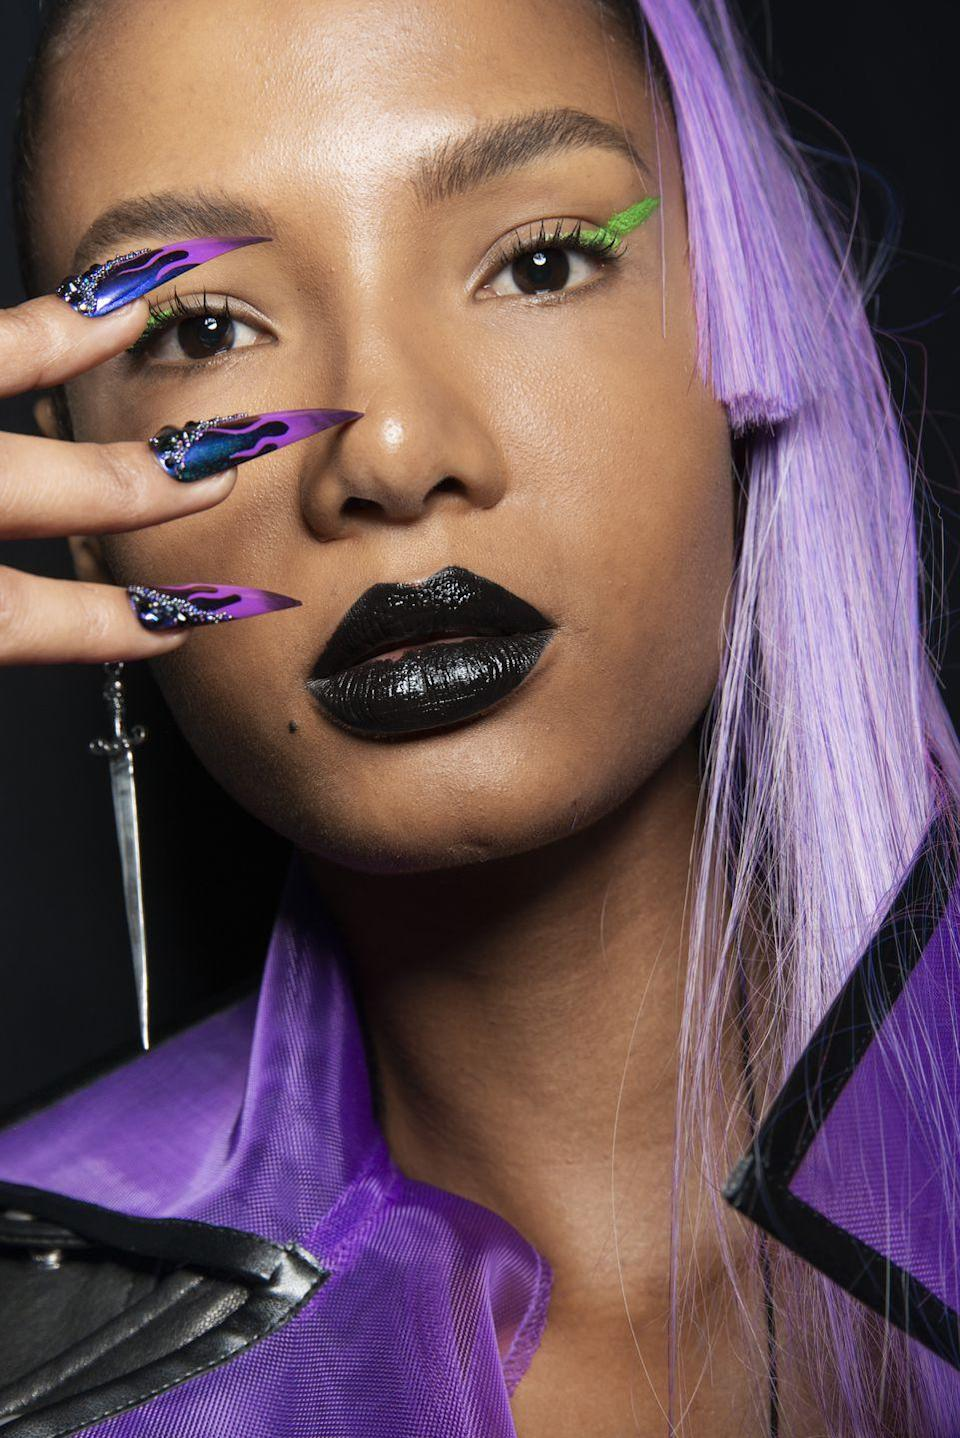 <p>If Disney Villains were also Sephora VIB Rouge members you'd get the high-impact look from The Blonds. We've never seen a Disney villain wear electric neon eyeliner and black lips-but we'll take it.</p>